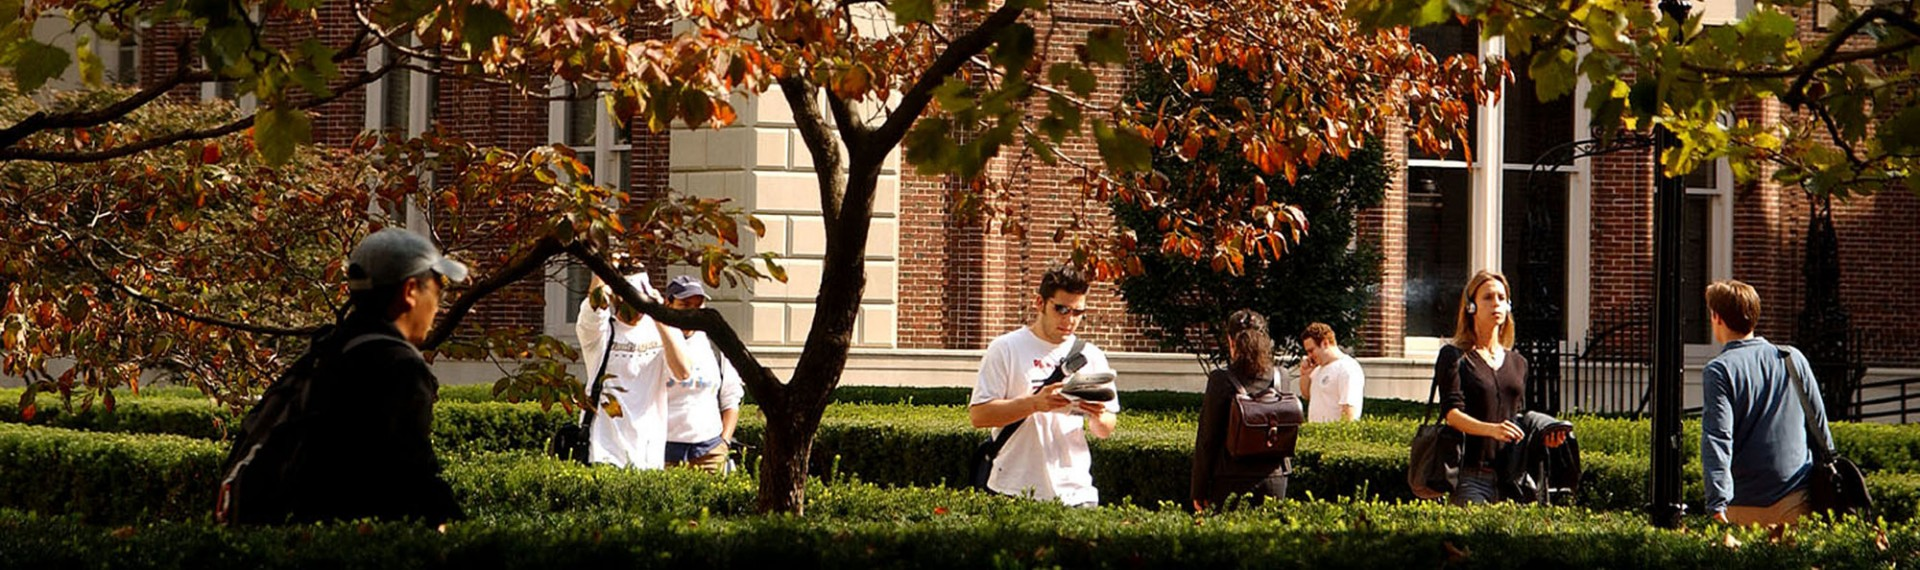 Students walk on campus along hedge-lined cobblestone paths